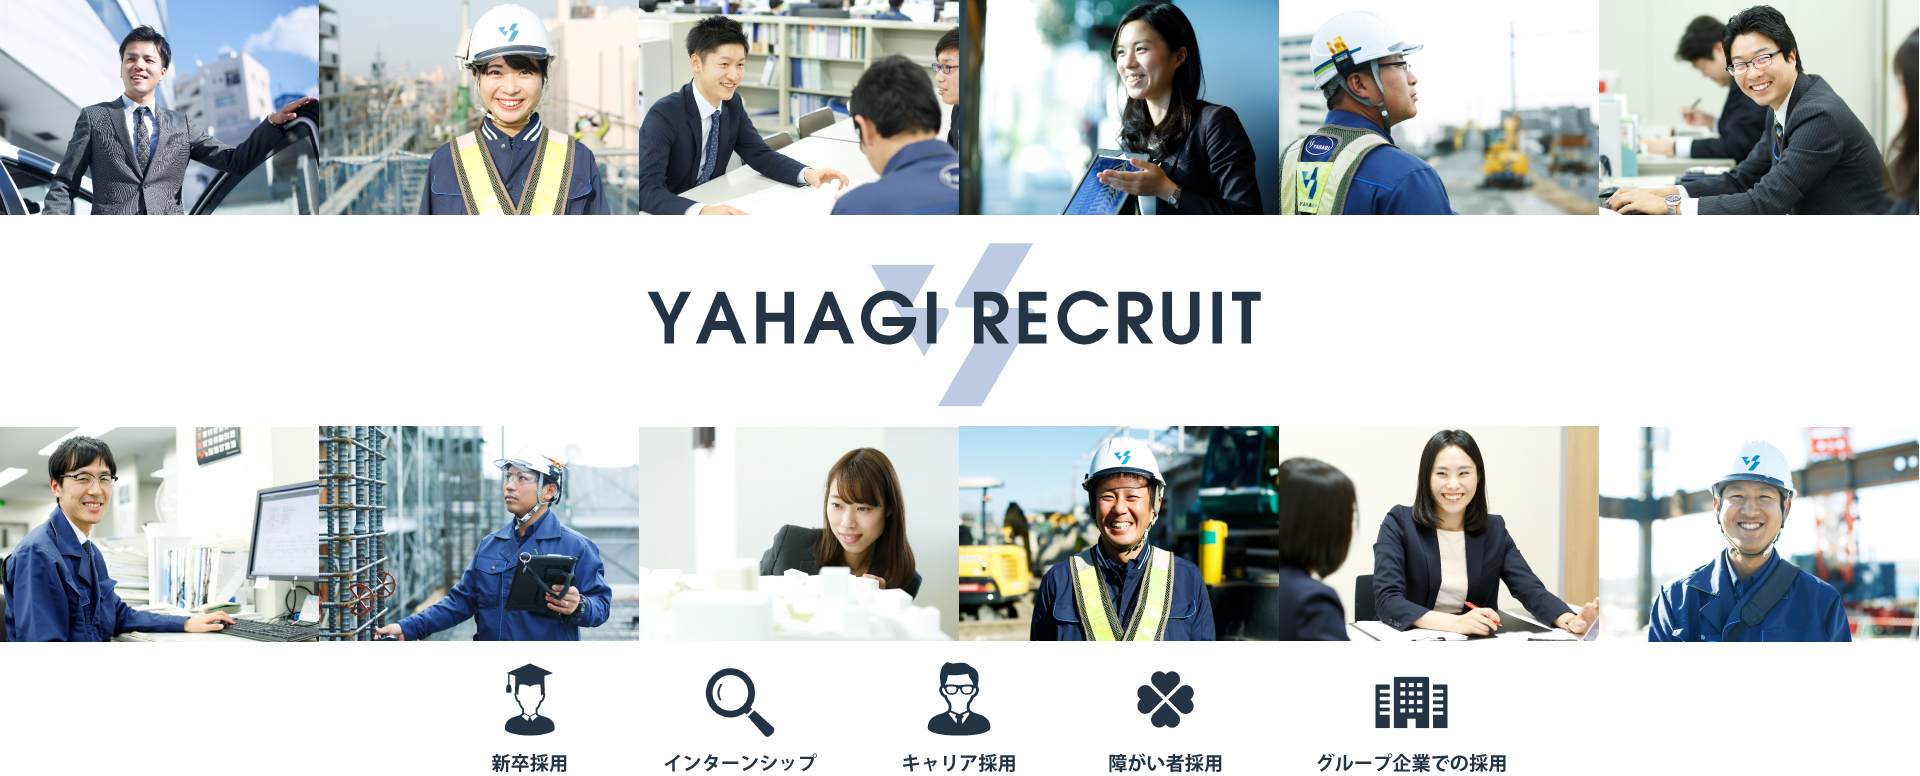 YAHAGI RECRUIT